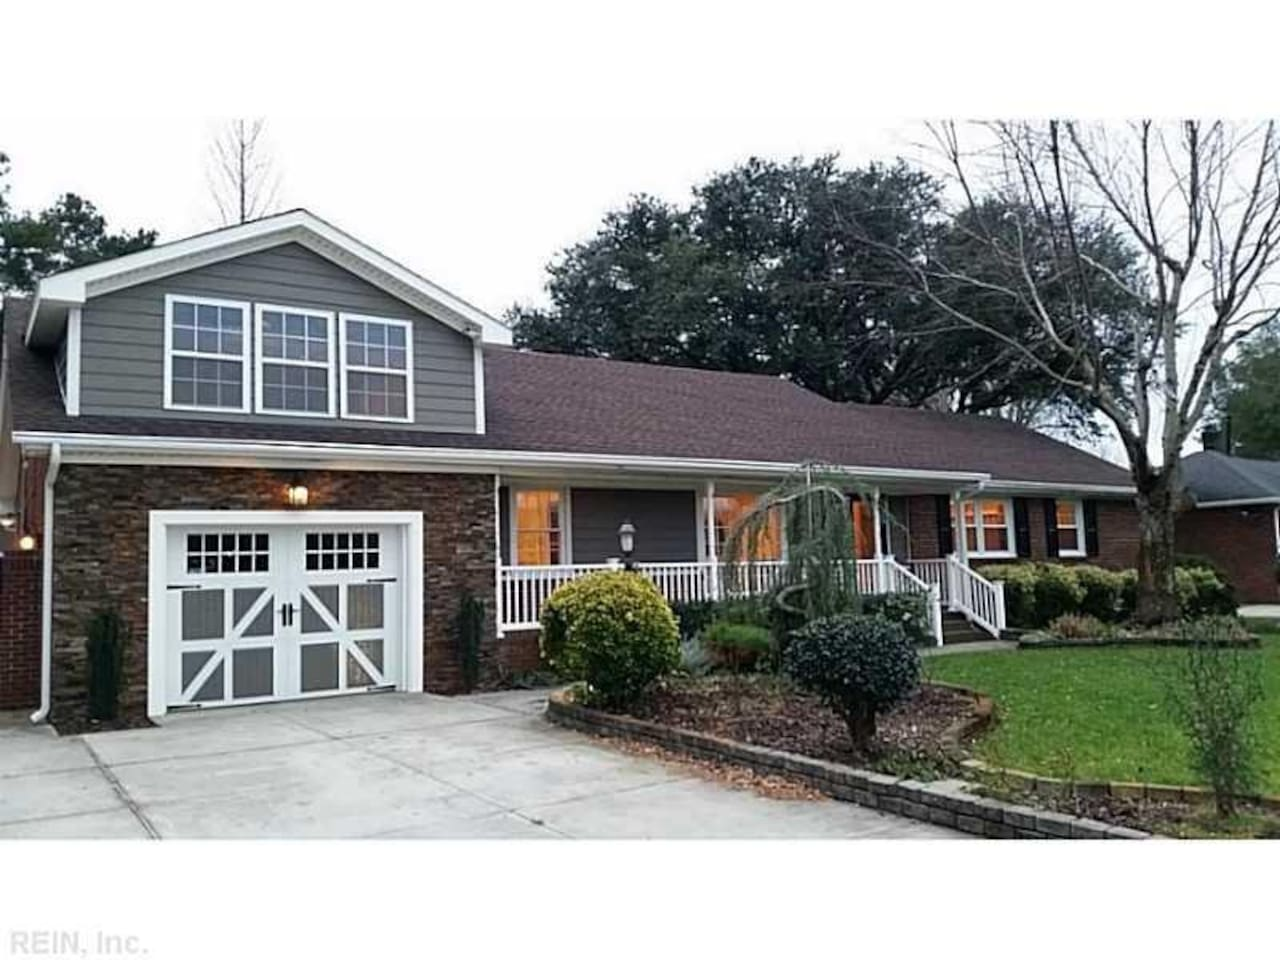 4 BR Ranch Home